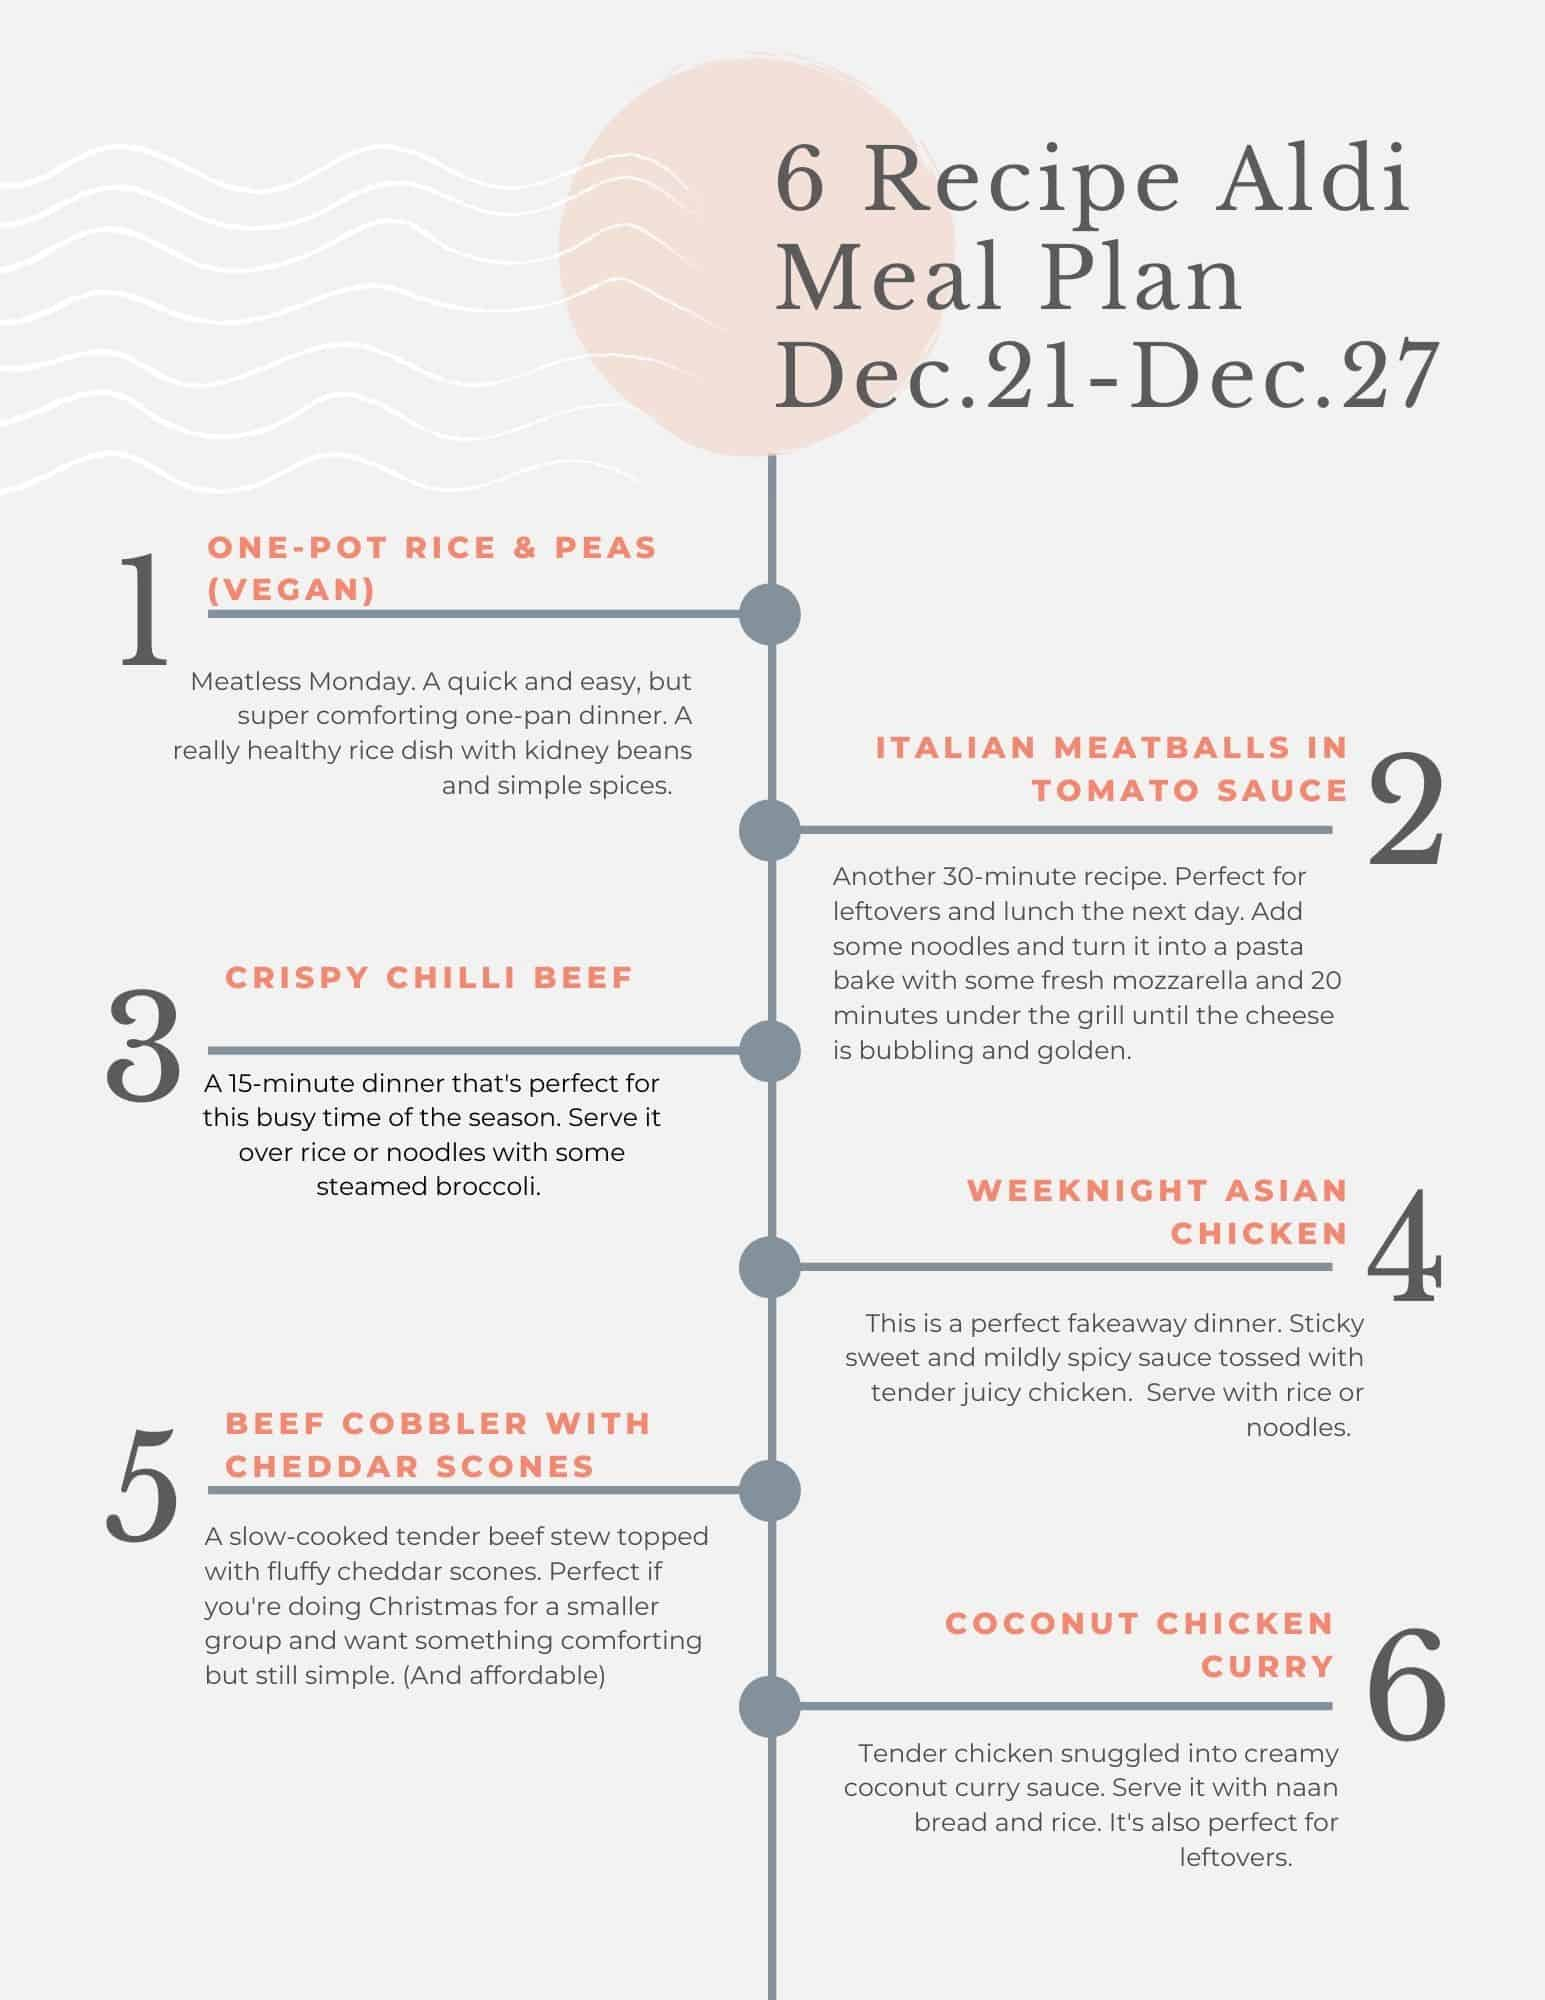 Tip sheet for the Aldi budget meal plan.